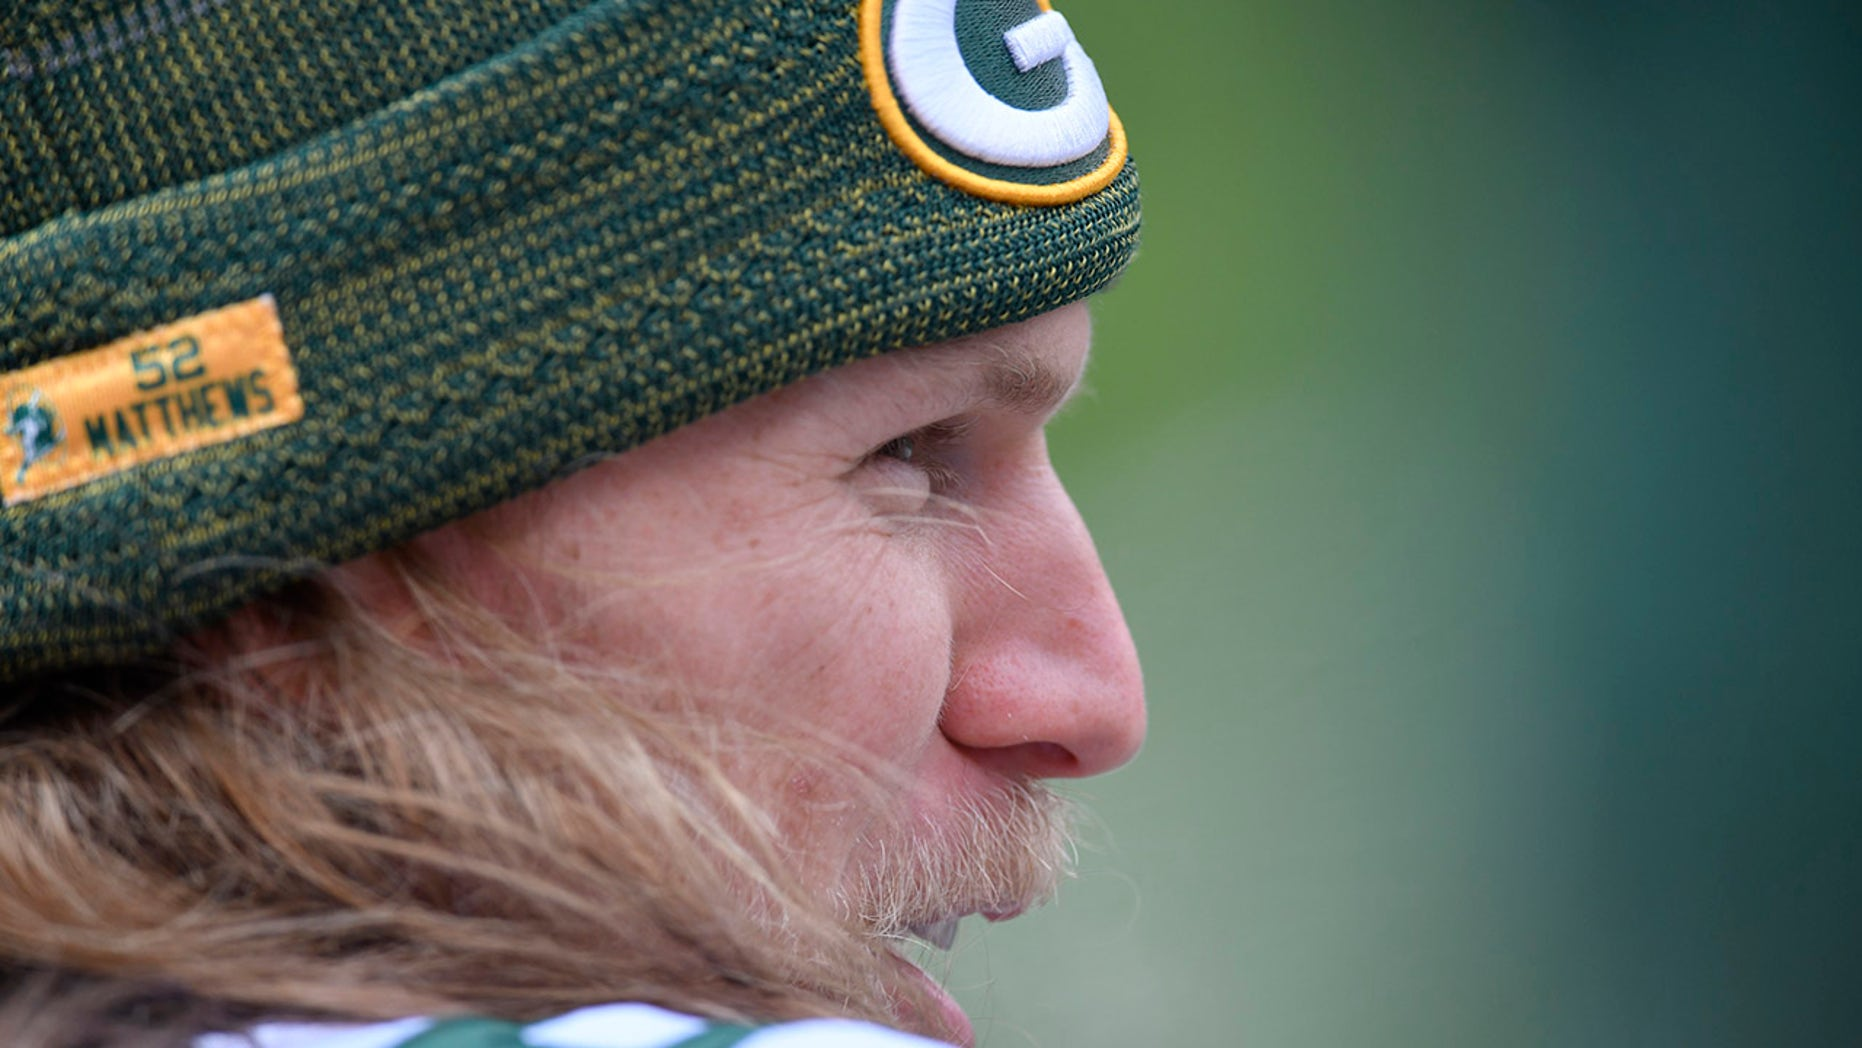 Clay Matthews was injured in a charity softball game over the weekend.